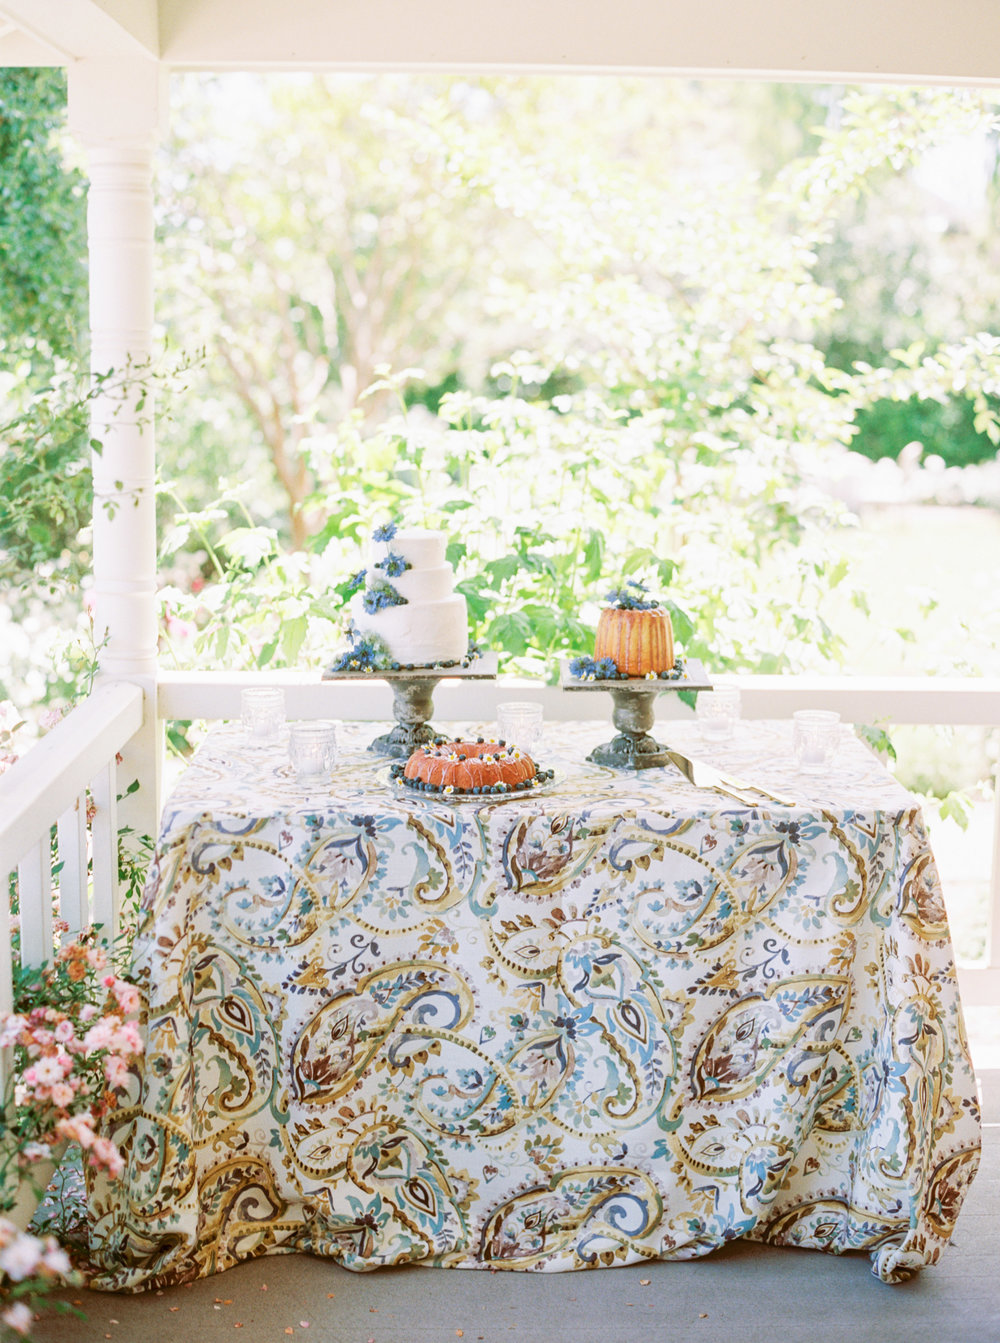 Cake Bloom Cake Table-Cake trio-dessert trio-Maysonnave House-Sonoma Wedding-Emily March Payne Photography-Napa Valley Linens